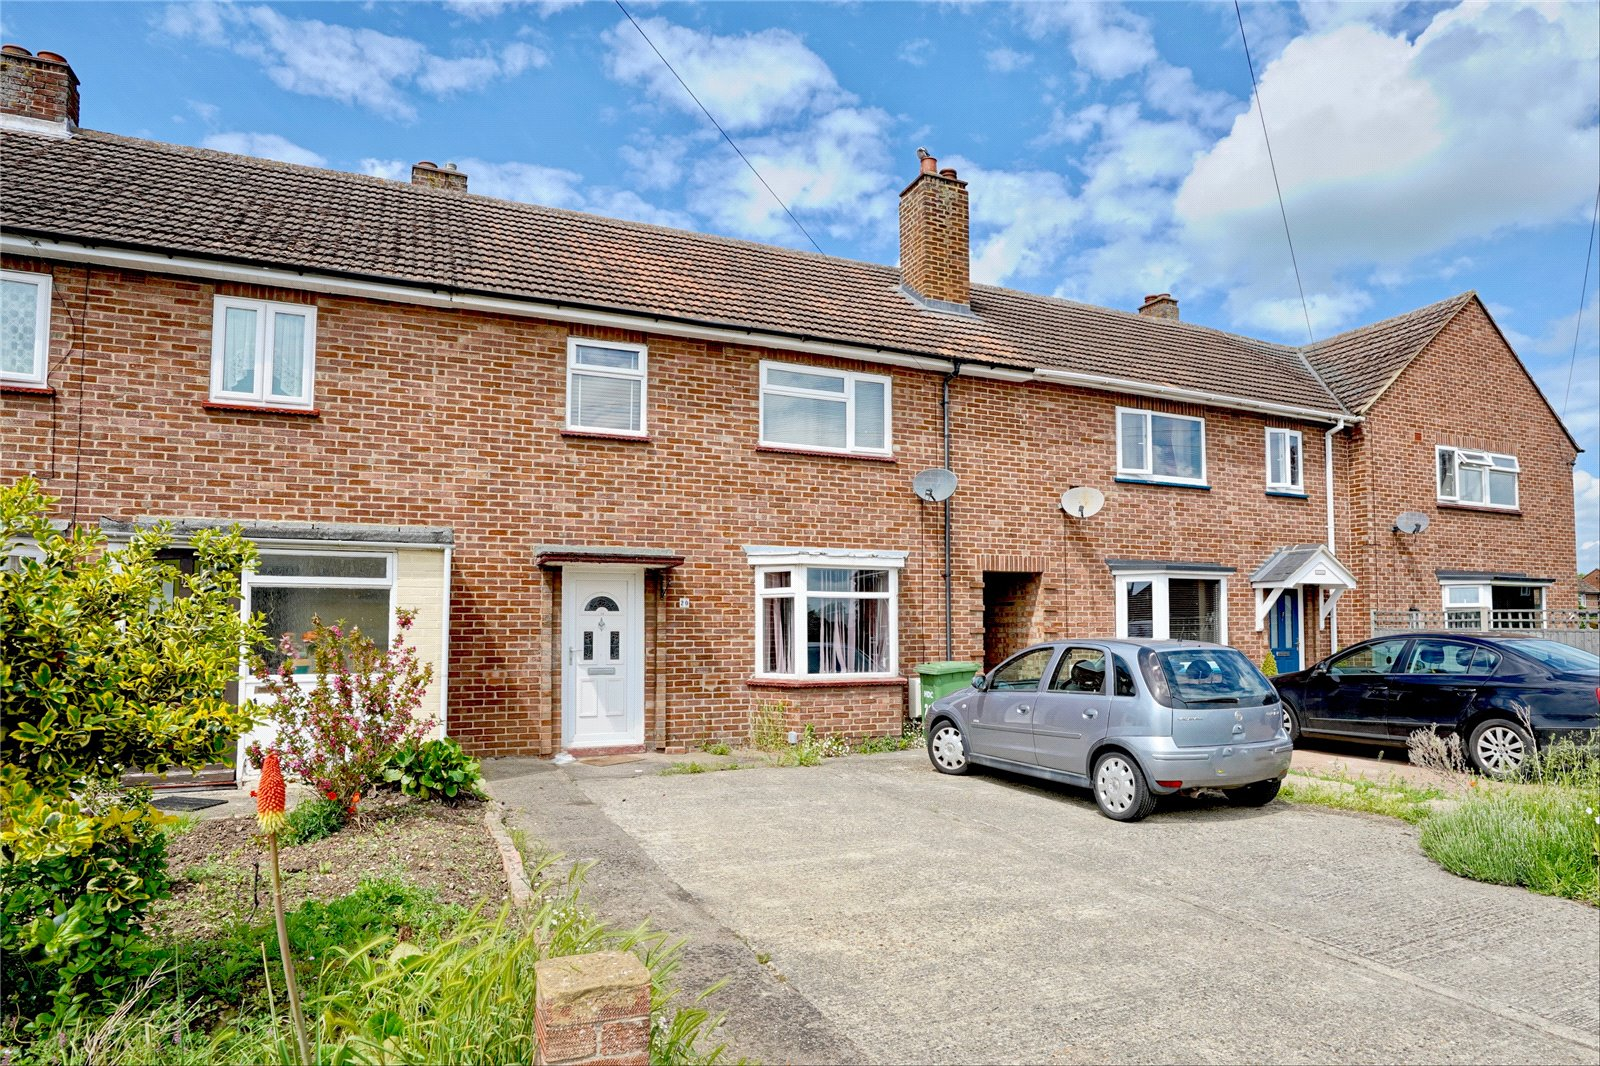 3 bed house for sale in Leys Road, St. Neots, PE19